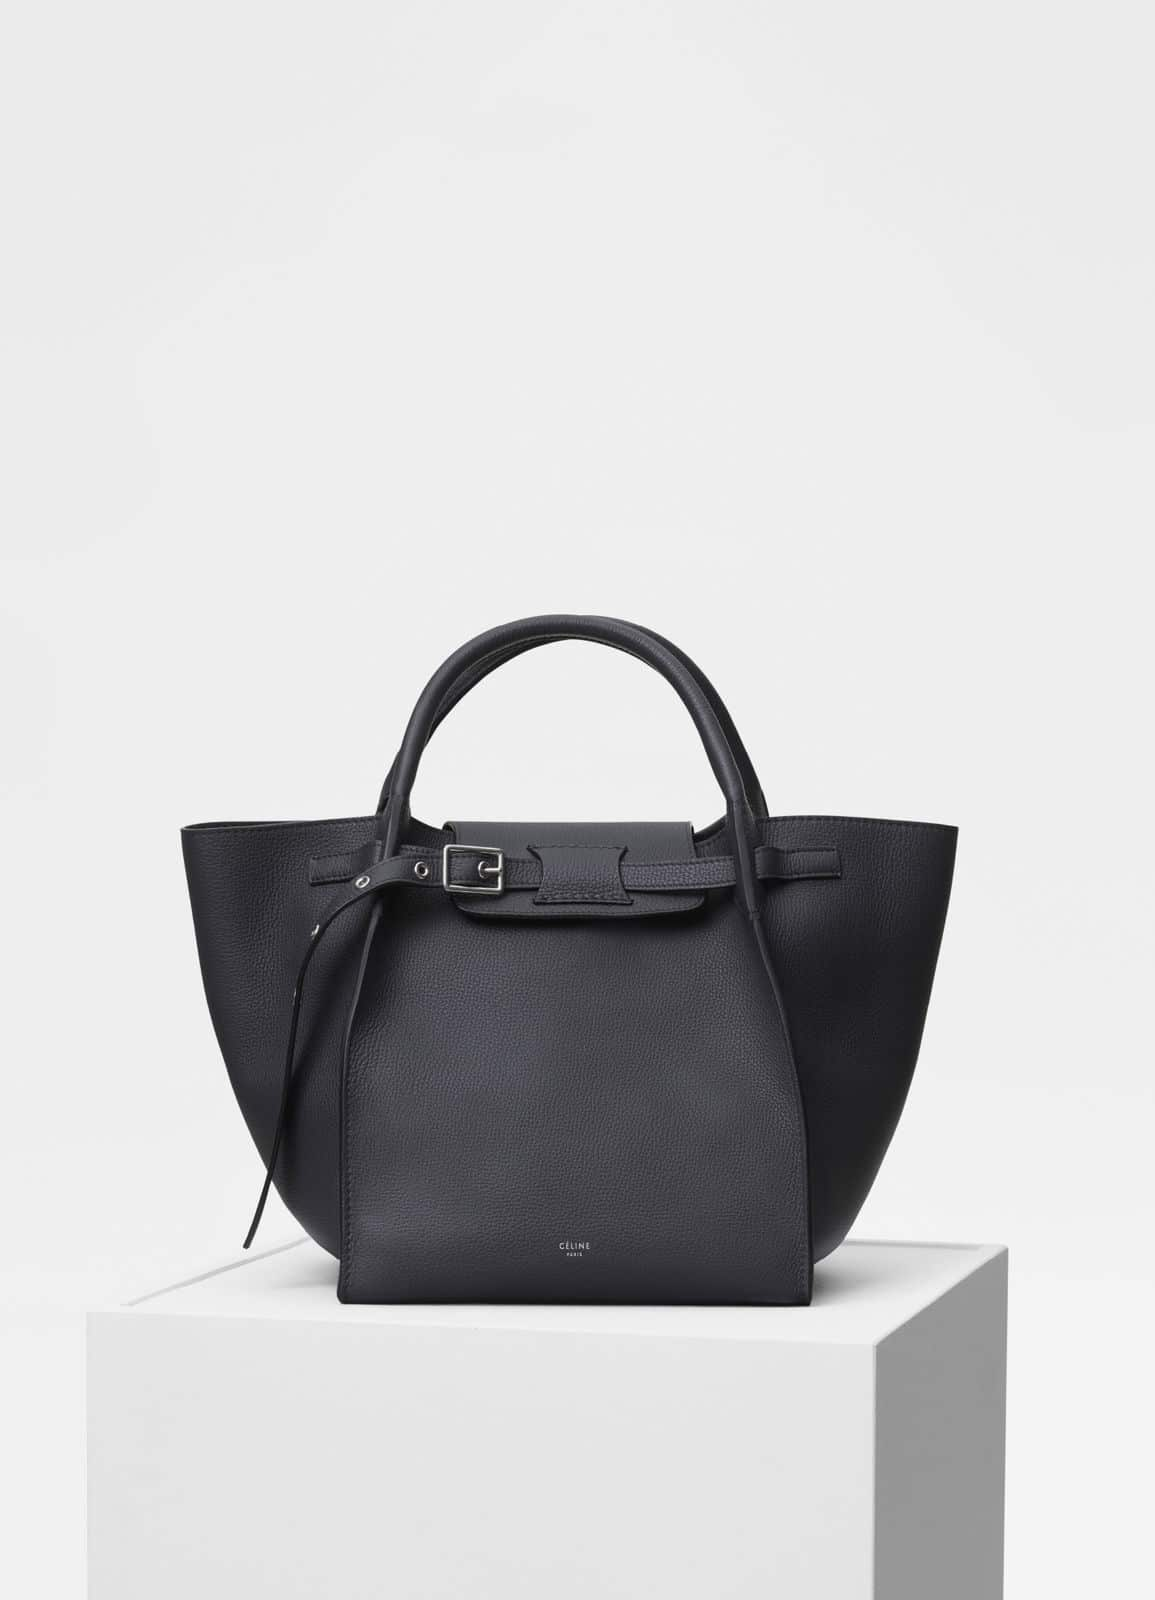 Celine Spring 2018 Bag Collection Featuring the Big Bucket ...